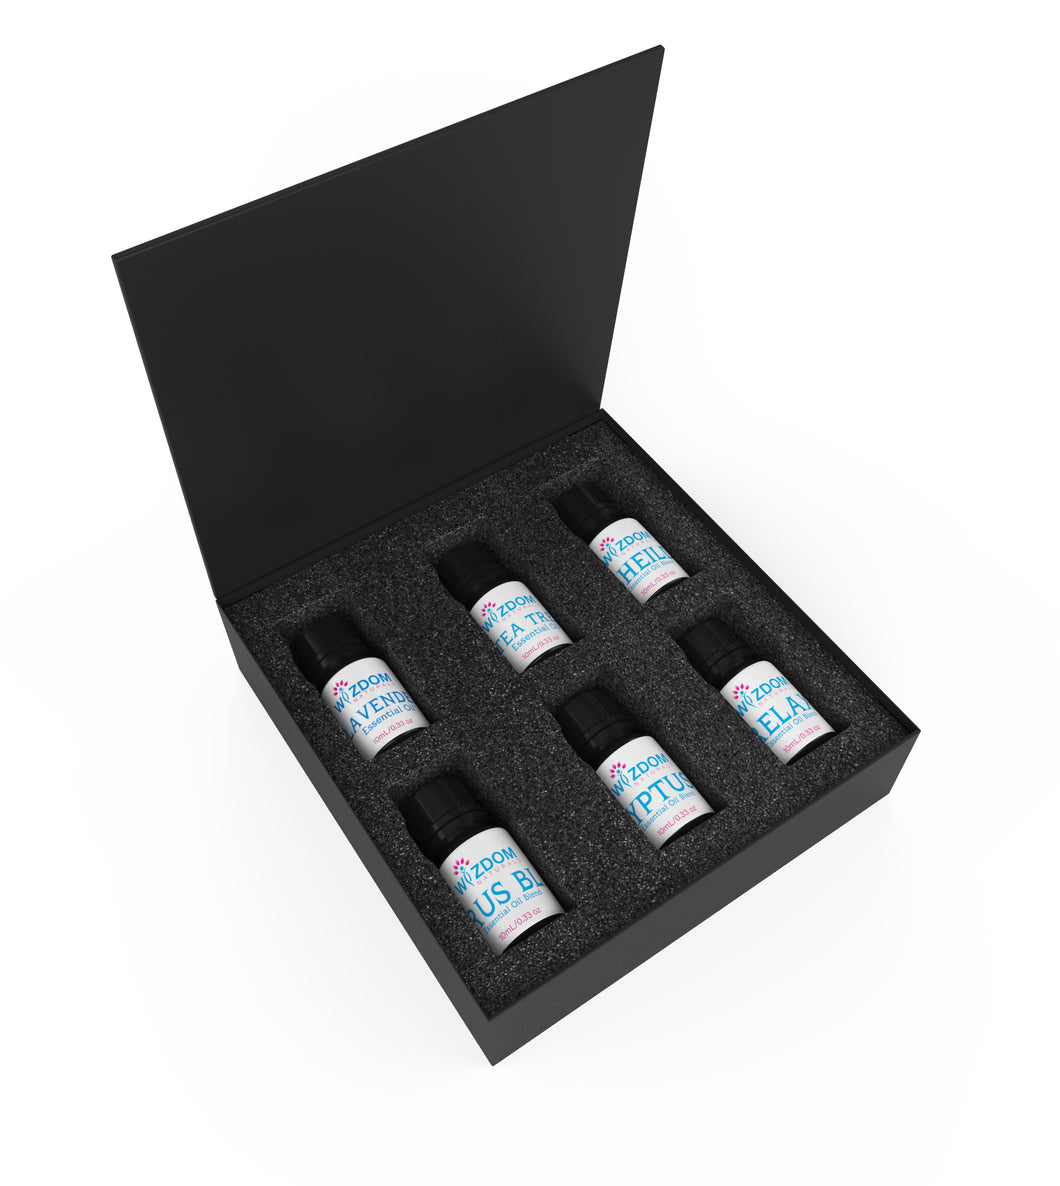 Sleek and Sturdy Storage box for 10ml Essential oil Bottles (Empty) image for illustration only